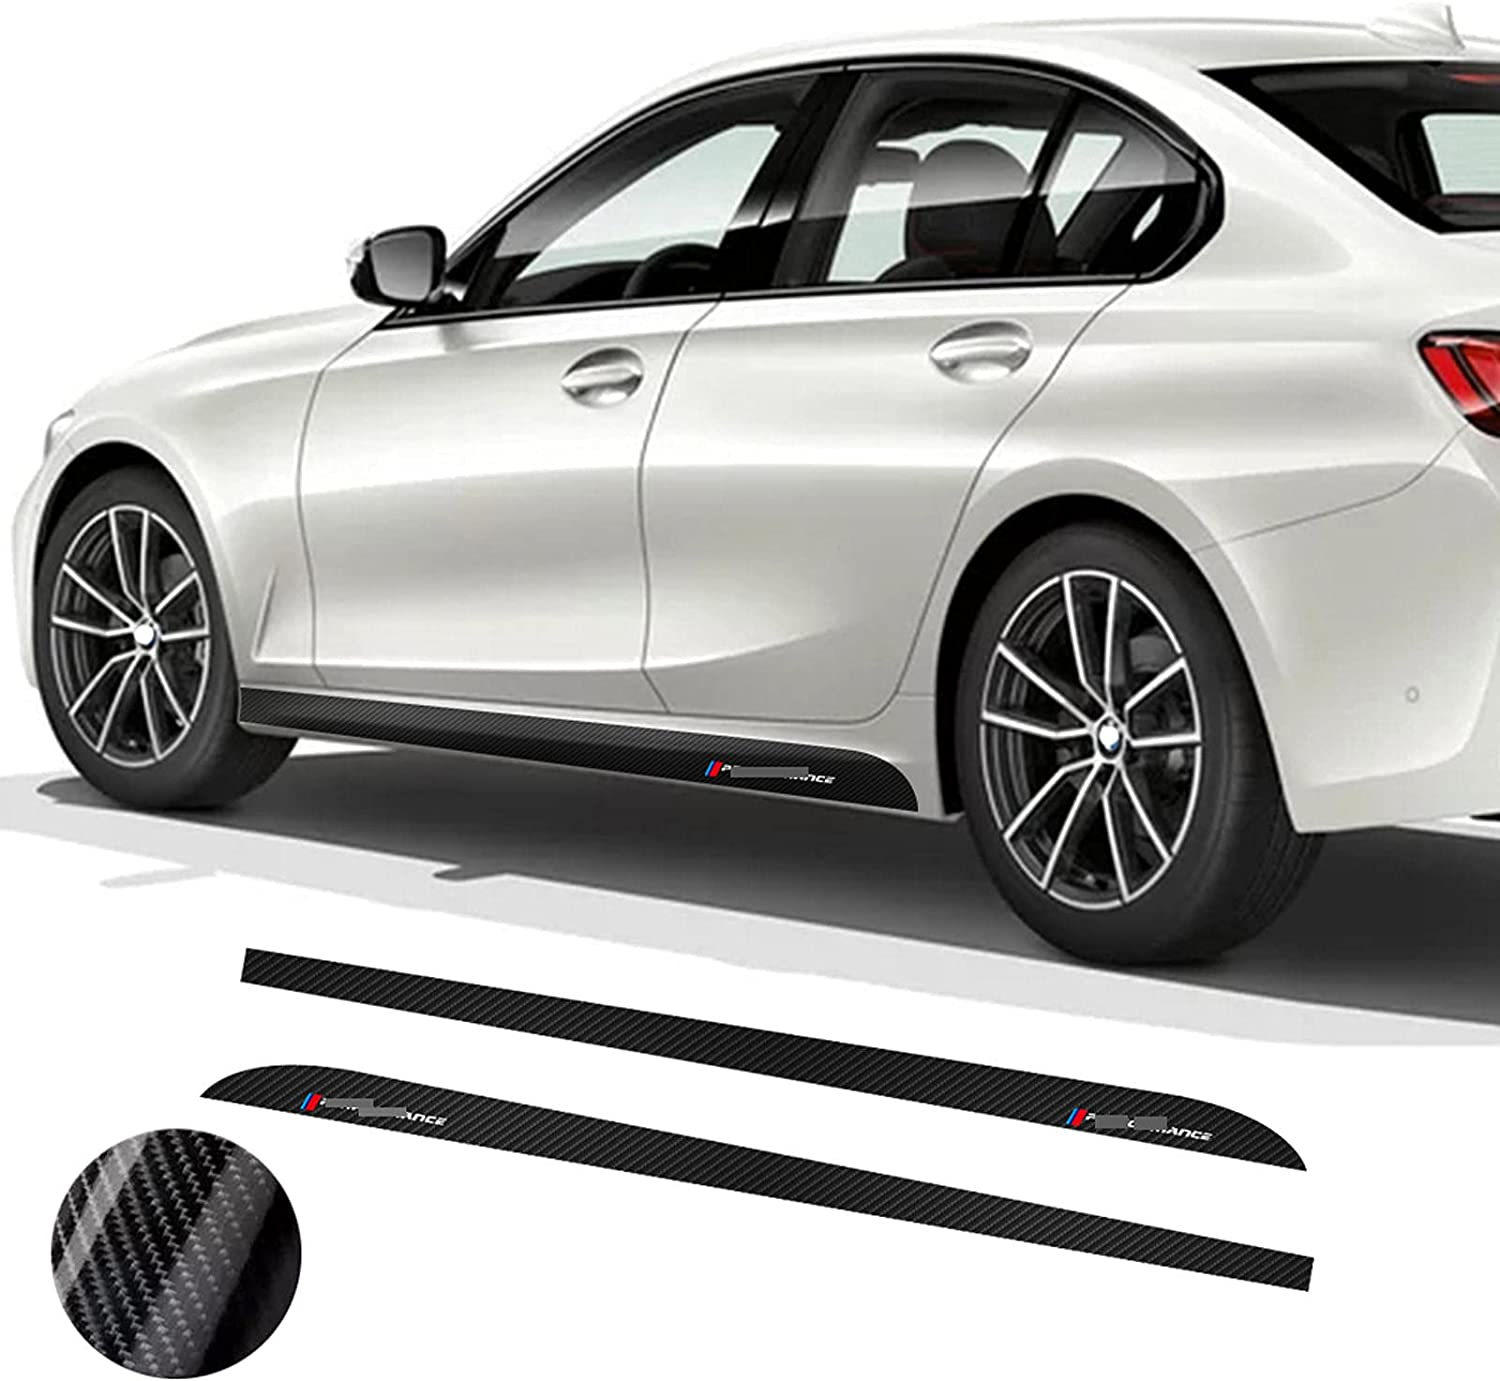 XKHSD Max 63% OFF Car Side Skirt Stripe Decal Decals 3 for Series Nashville-Davidson Mall BMW 2019-